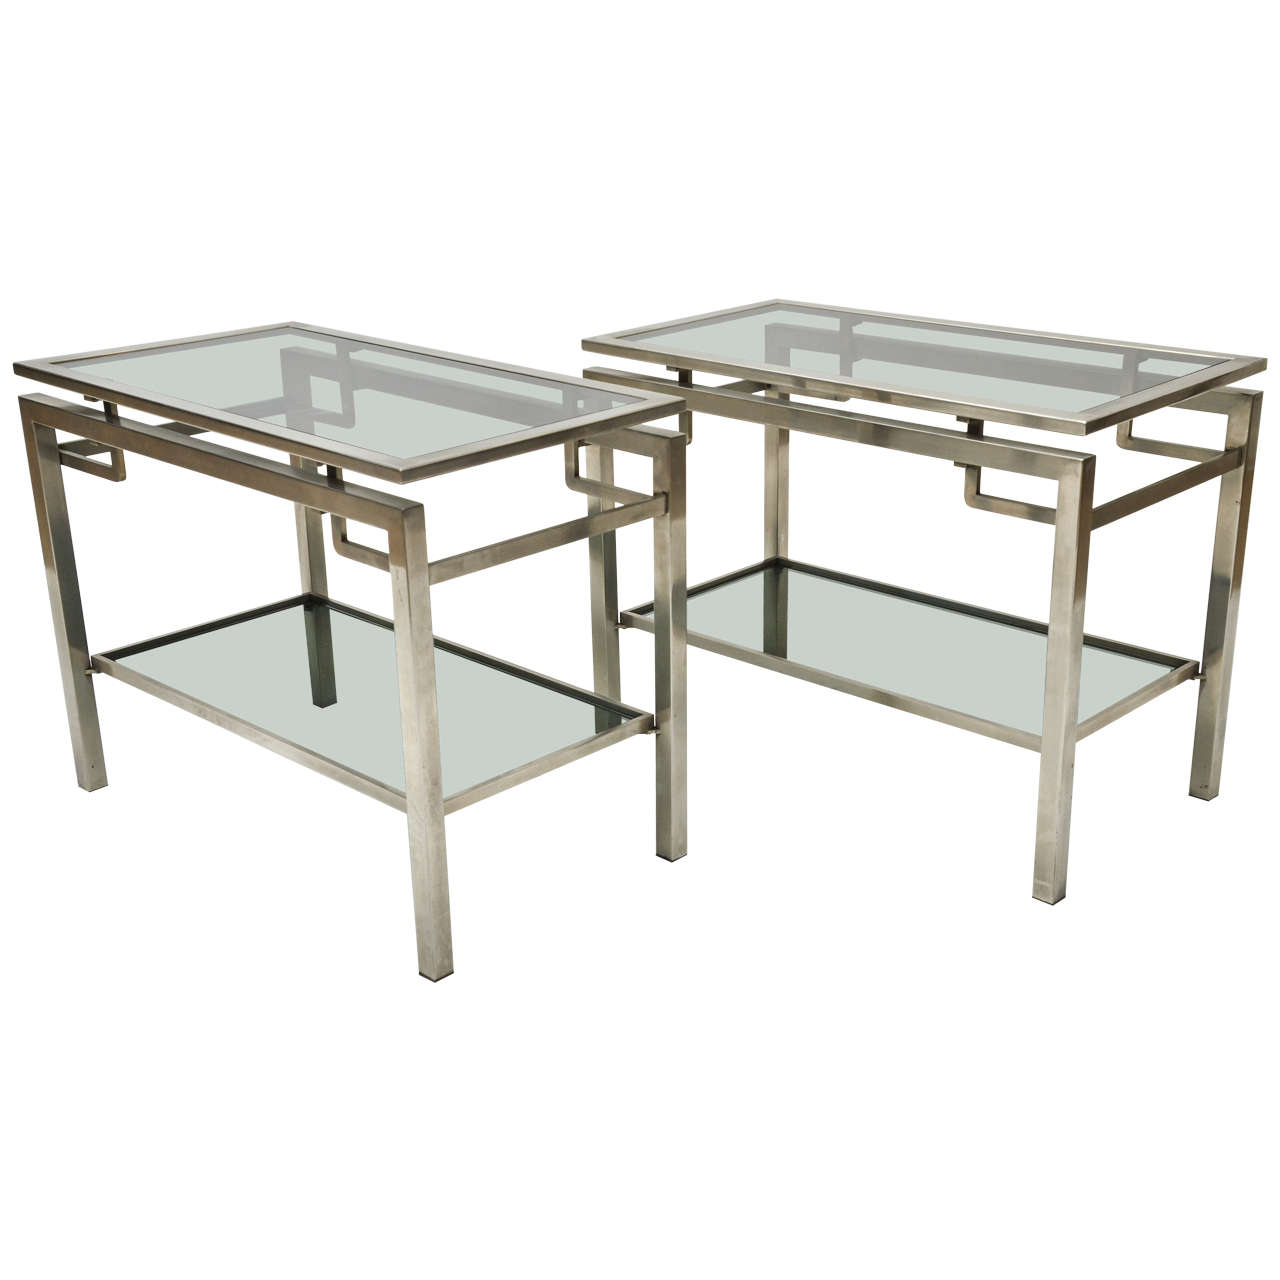 Pair of Mid-Century Modern French Guy Le Fevre Chrome Two-Tier Side Tables For Sale